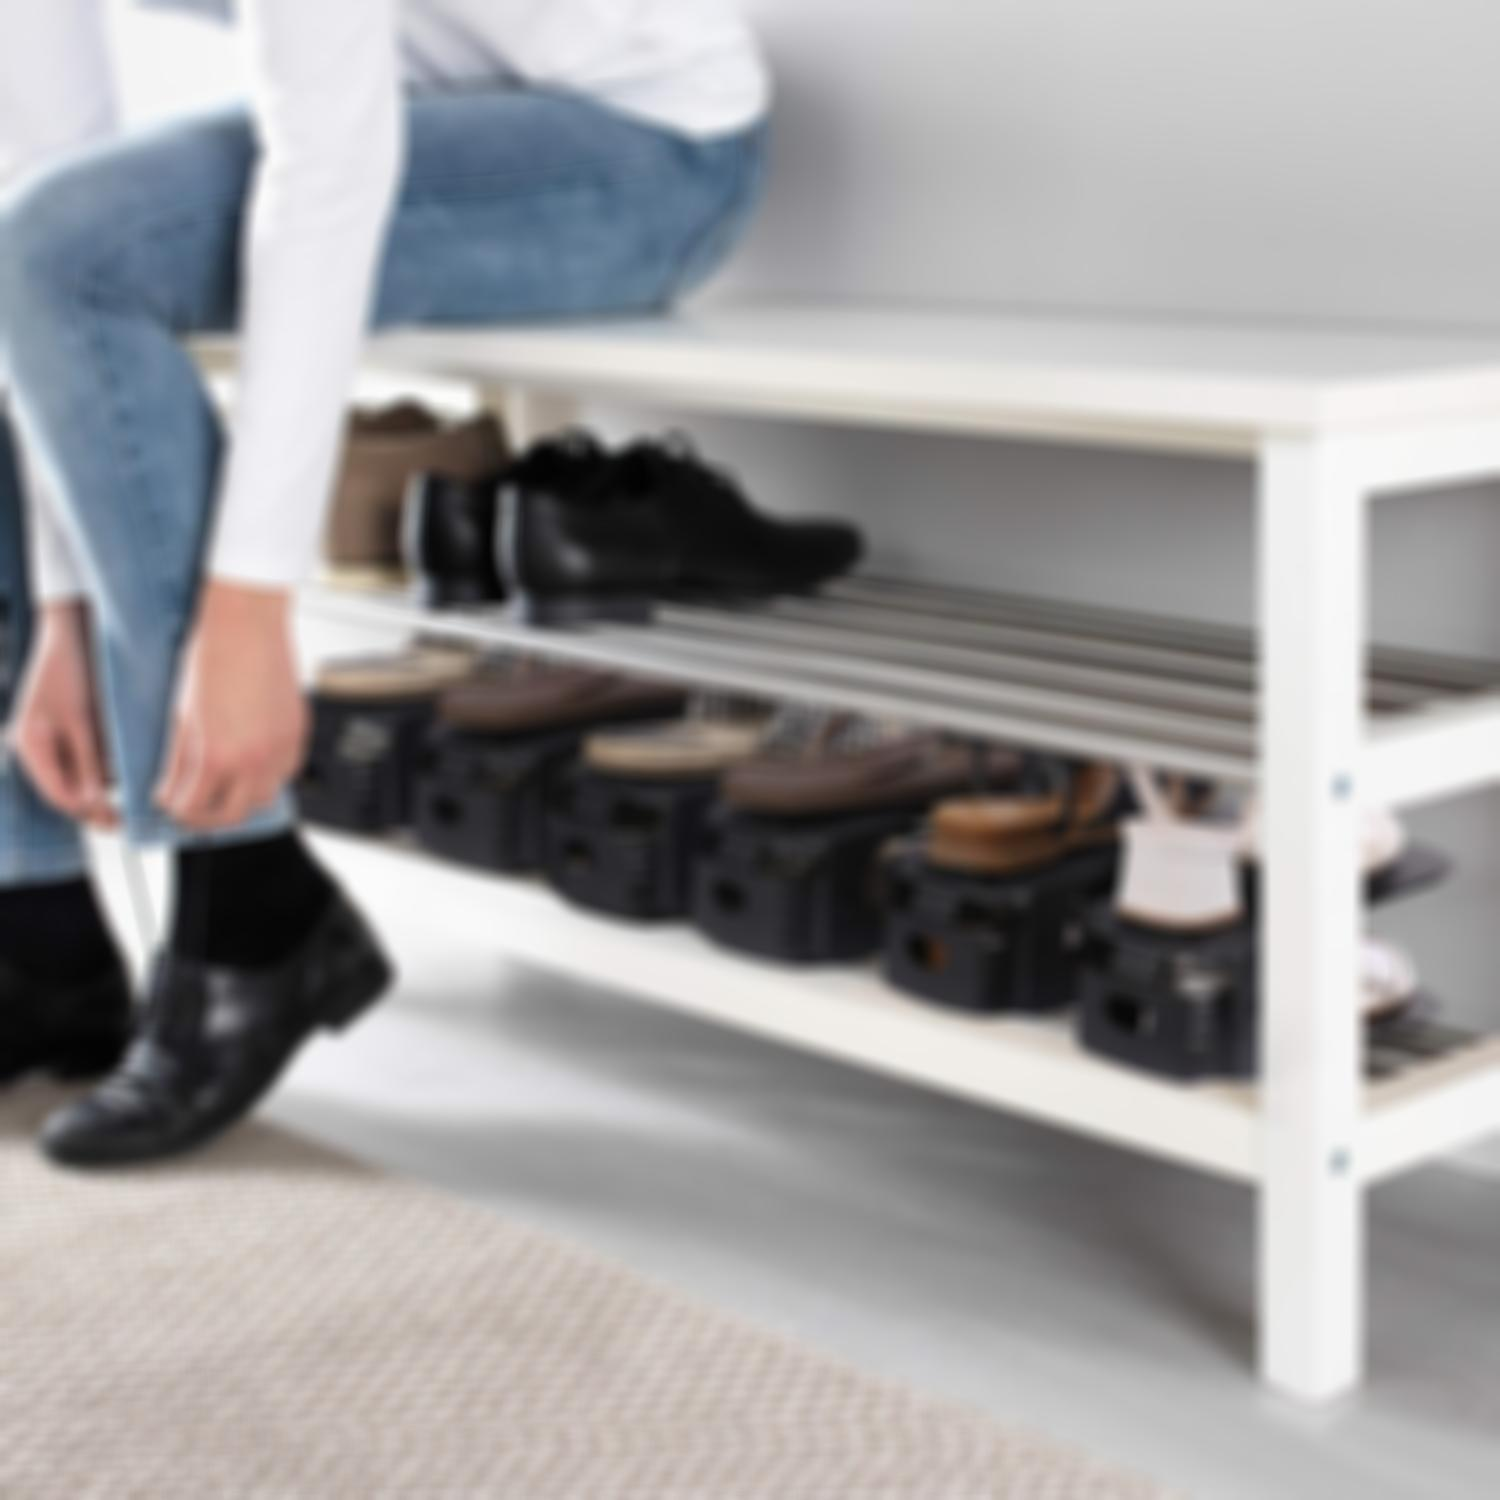 Arosetop 20 Pcs Adjustable Double Deck Shoe Rack & Shoe Organizer Space-Saving Storage